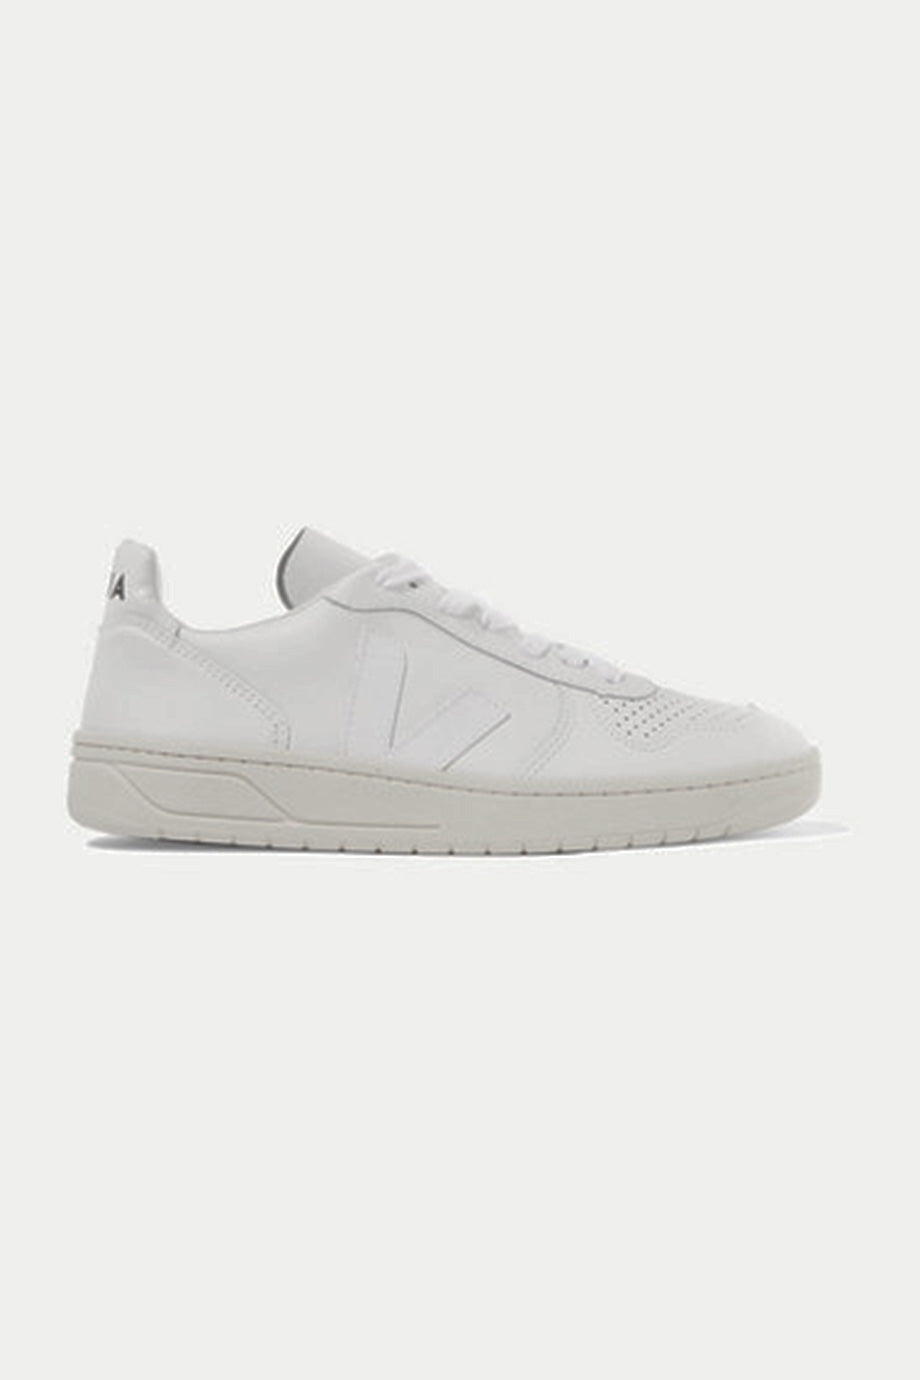 Veja + Net Sustain - V-10 Leather Sneakers